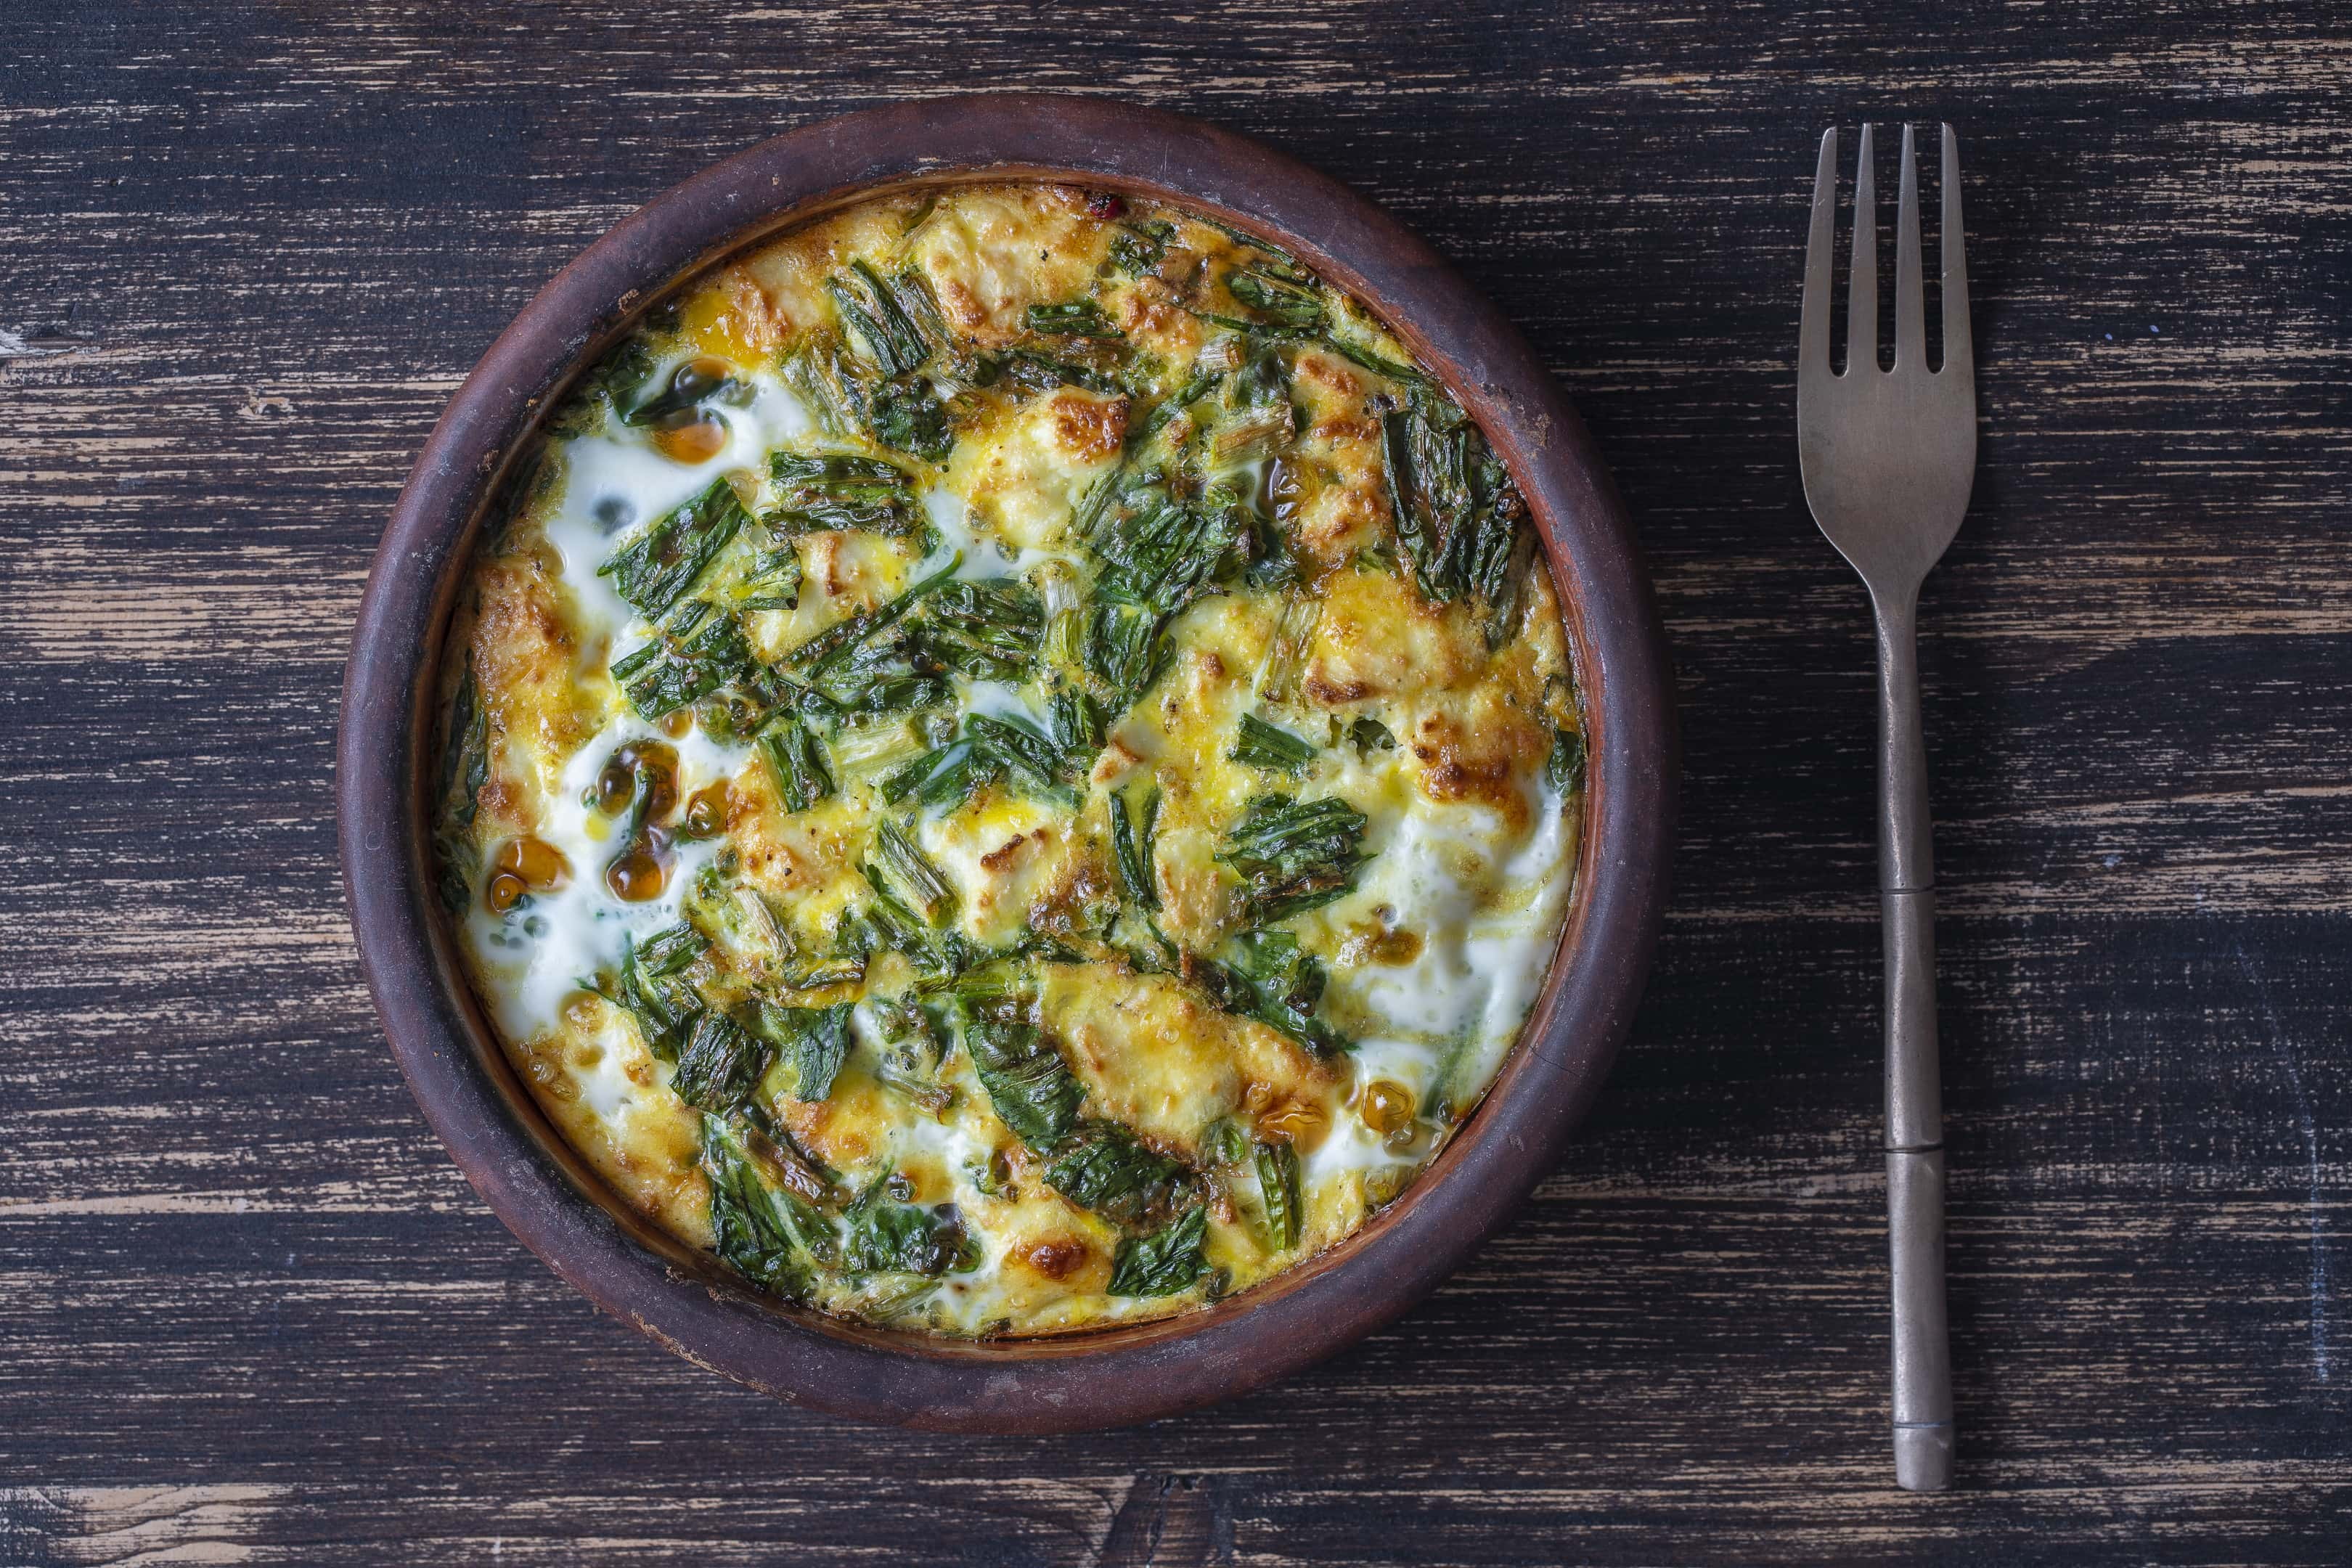 Vegetarian frittata with ramps wild leeks leaves, pepper, onion, cheese and green wild garlic leaves